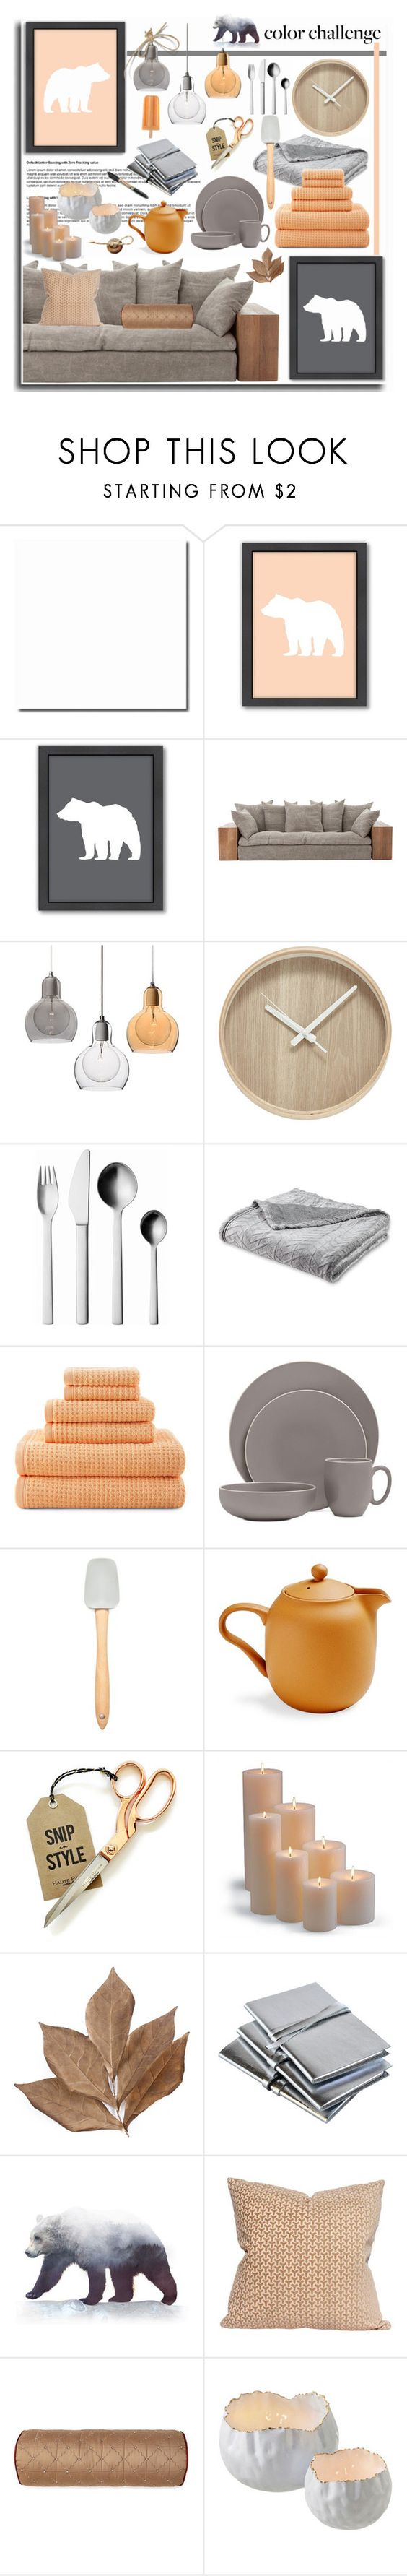 """""""Peach and Gray Home"""" by leegal57 ❤ liked on Polyvore featuring interior, interiors, interior design, home, home decor, interior decorating, Americanflat, Georg Jensen, JCPenney Home and Vera Wang"""